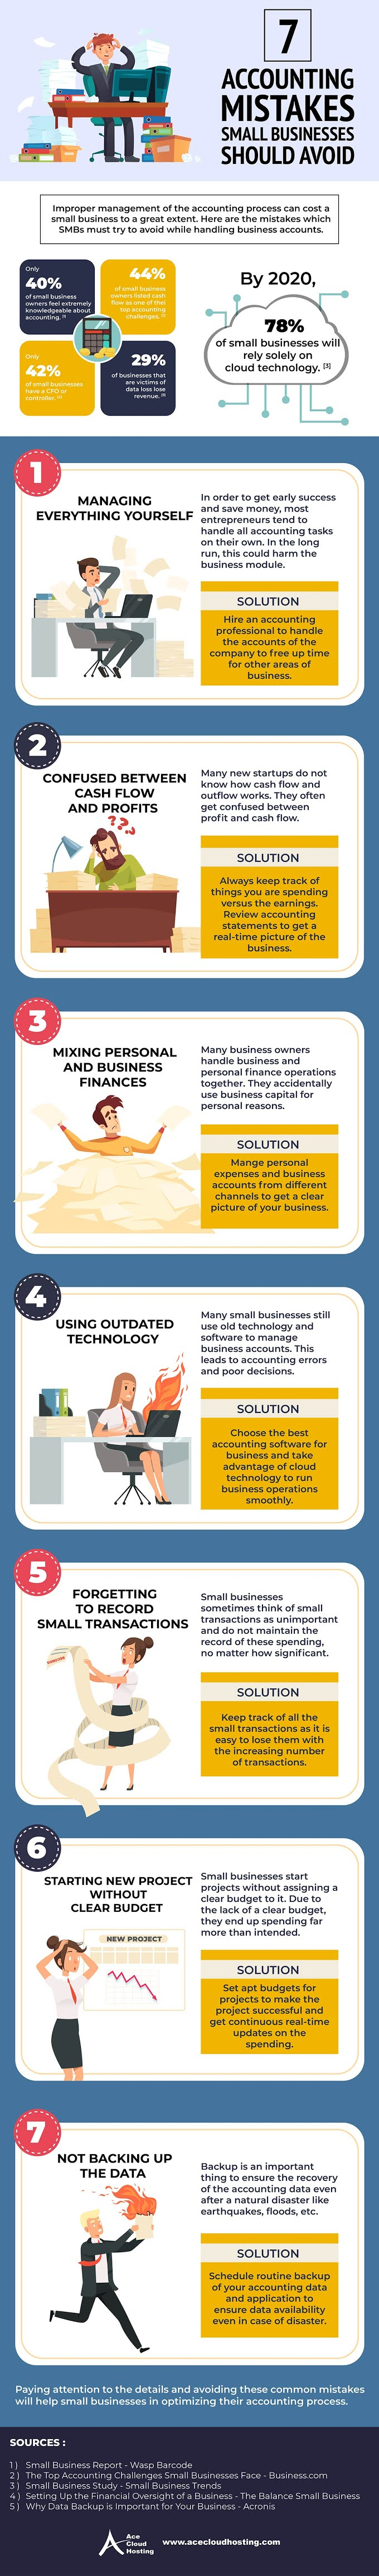 7 Accounting Mistakes Accountants Should Avoid #infographic